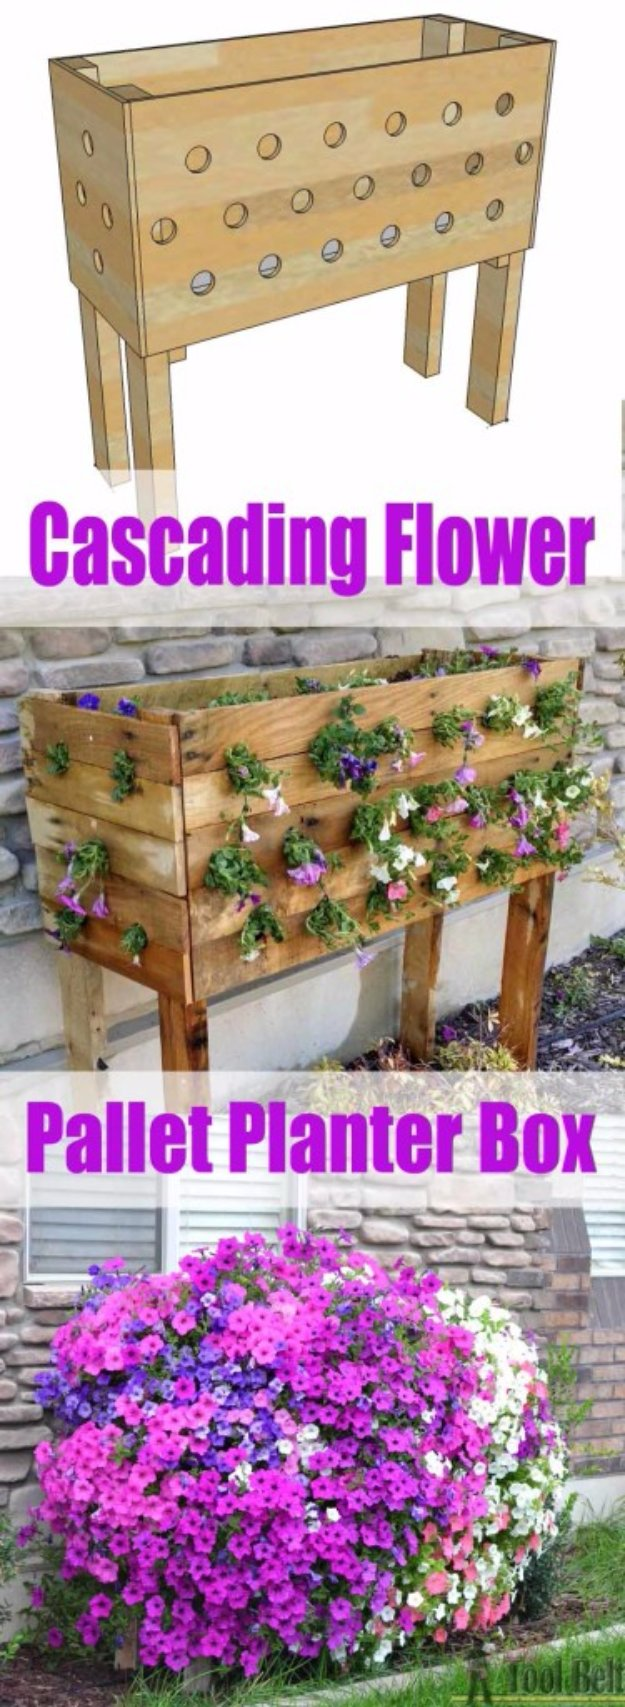 DIY Ideas for Your Garden - Cascading Flower Pallet Planter Box - Cool Projects for Spring and Summer Gardening - Planters, Rocks, Markers and Handmade Decor for Outdoor Gardens